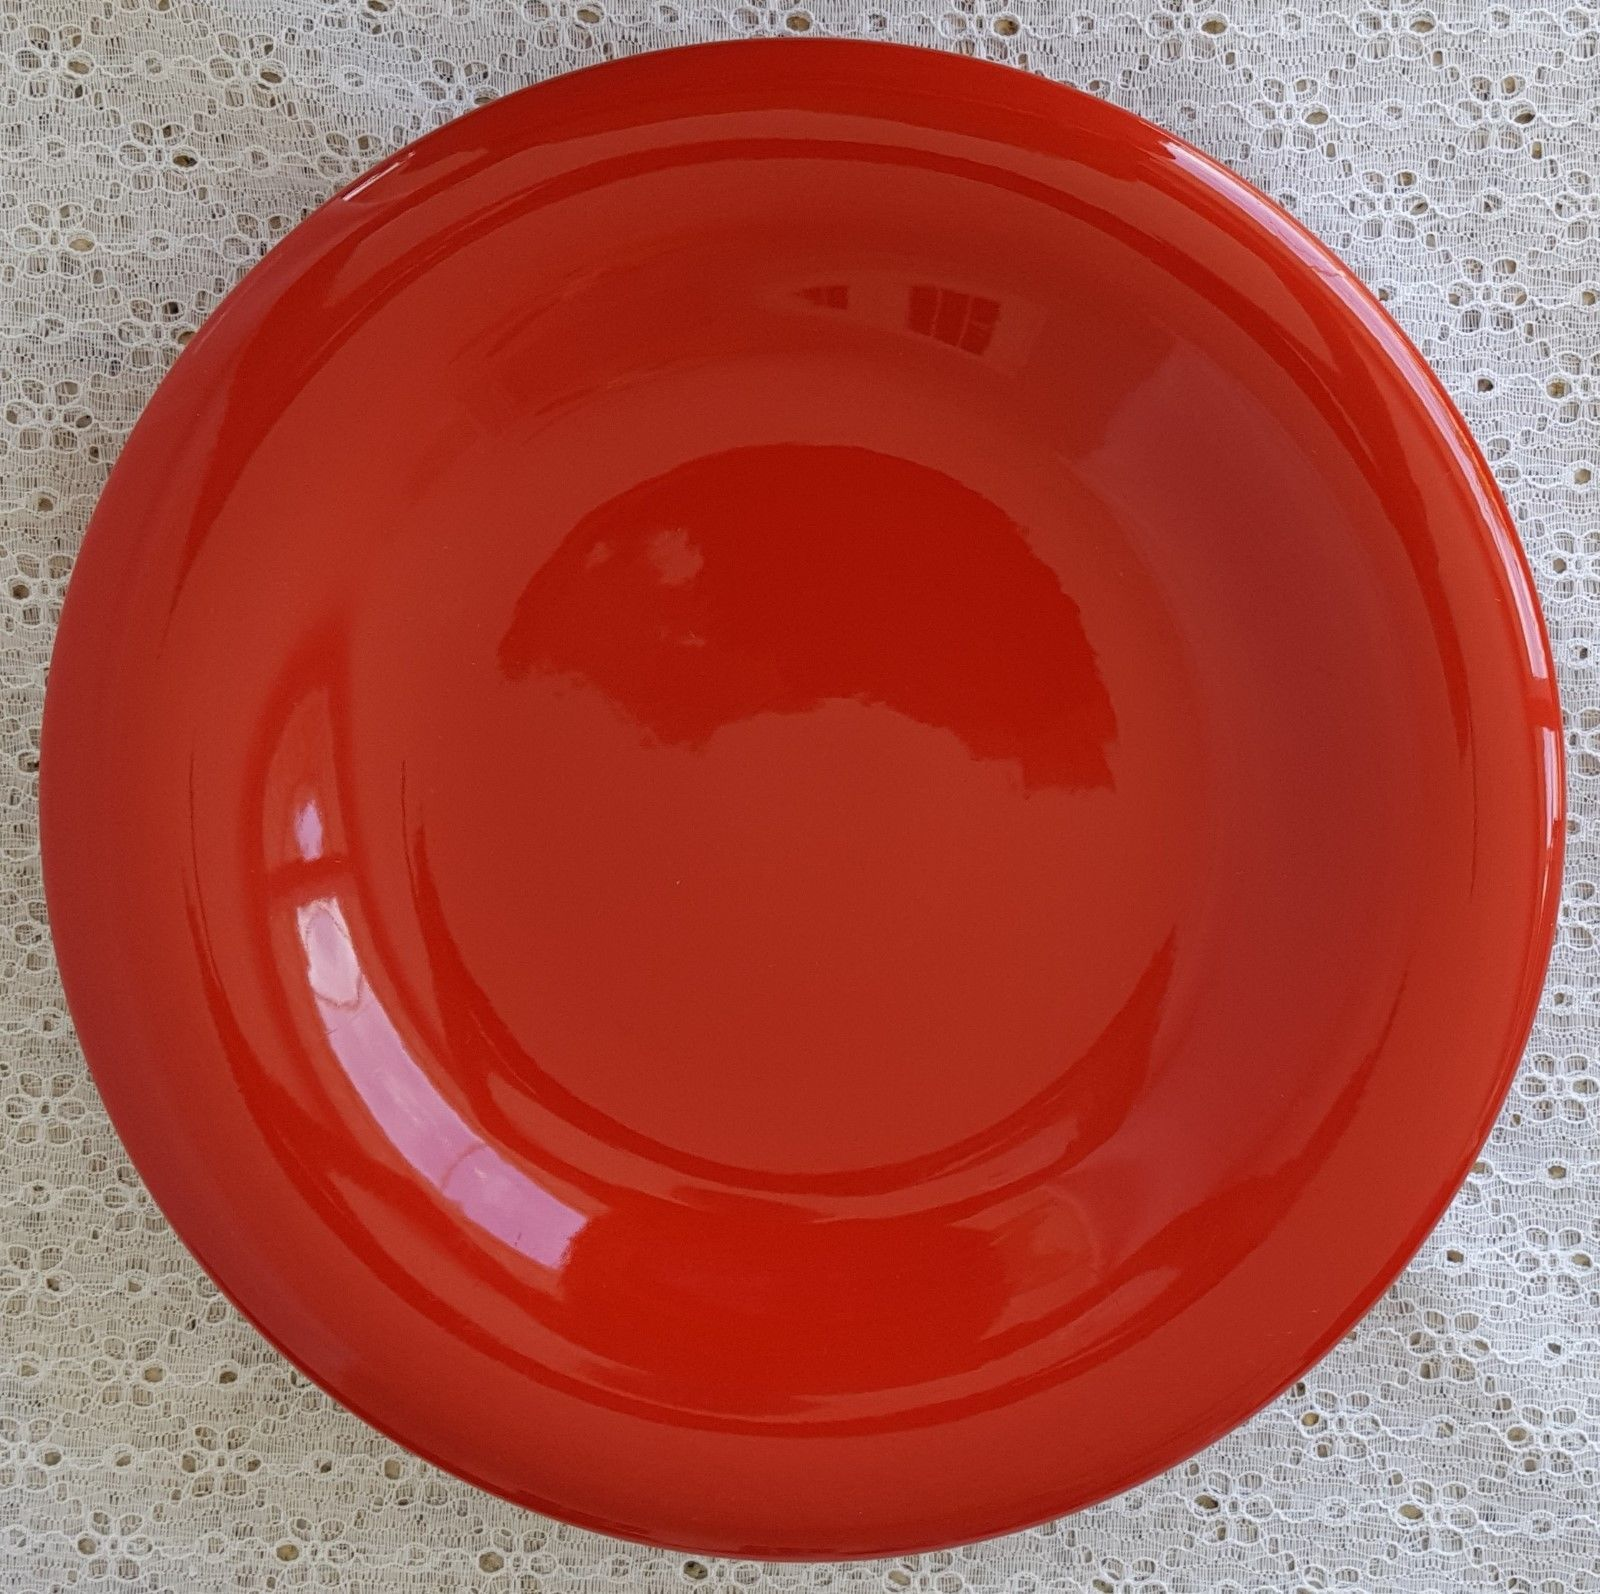 ... Tabletops LIfestyle Unlimited Espana Blaze Red Dinner Plates Set of 5 Stoneware ...  sc 1 st  Bonanza & Tabletops LIfestyle Unlimited Espana Blaze and 50 similar items